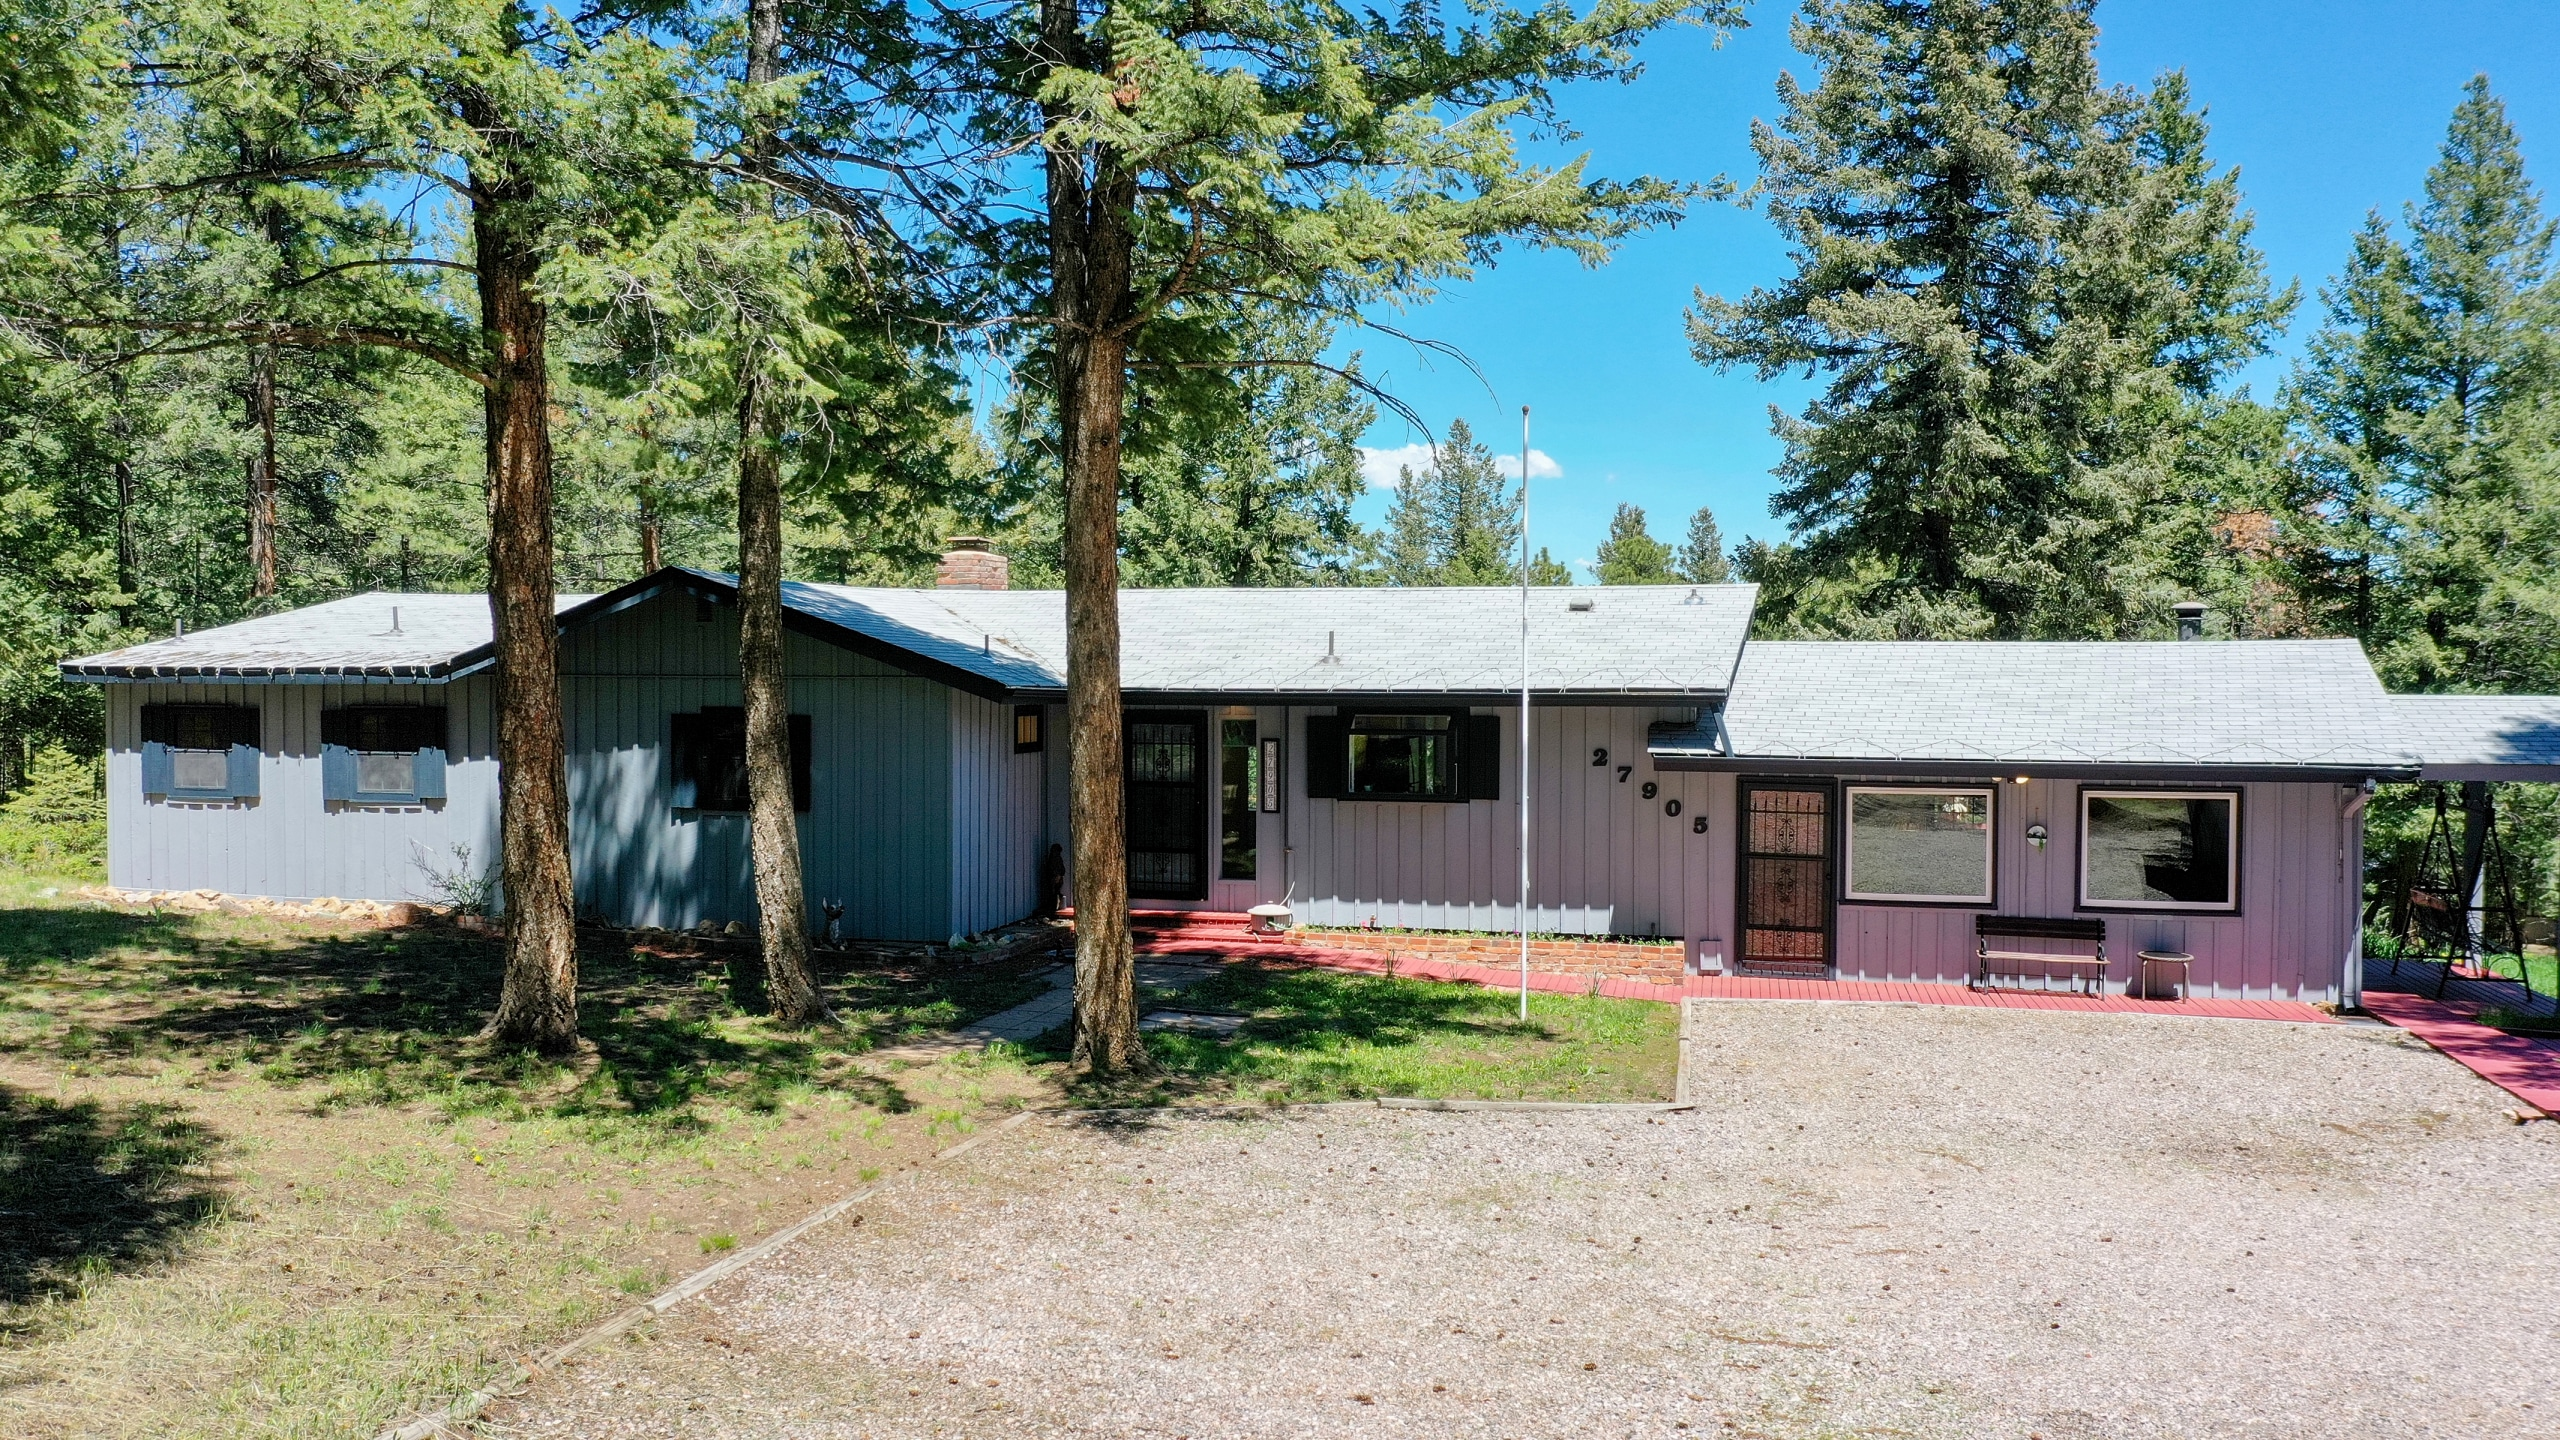 Evergreen Home For Sale Ranch One Level on two quiet acres